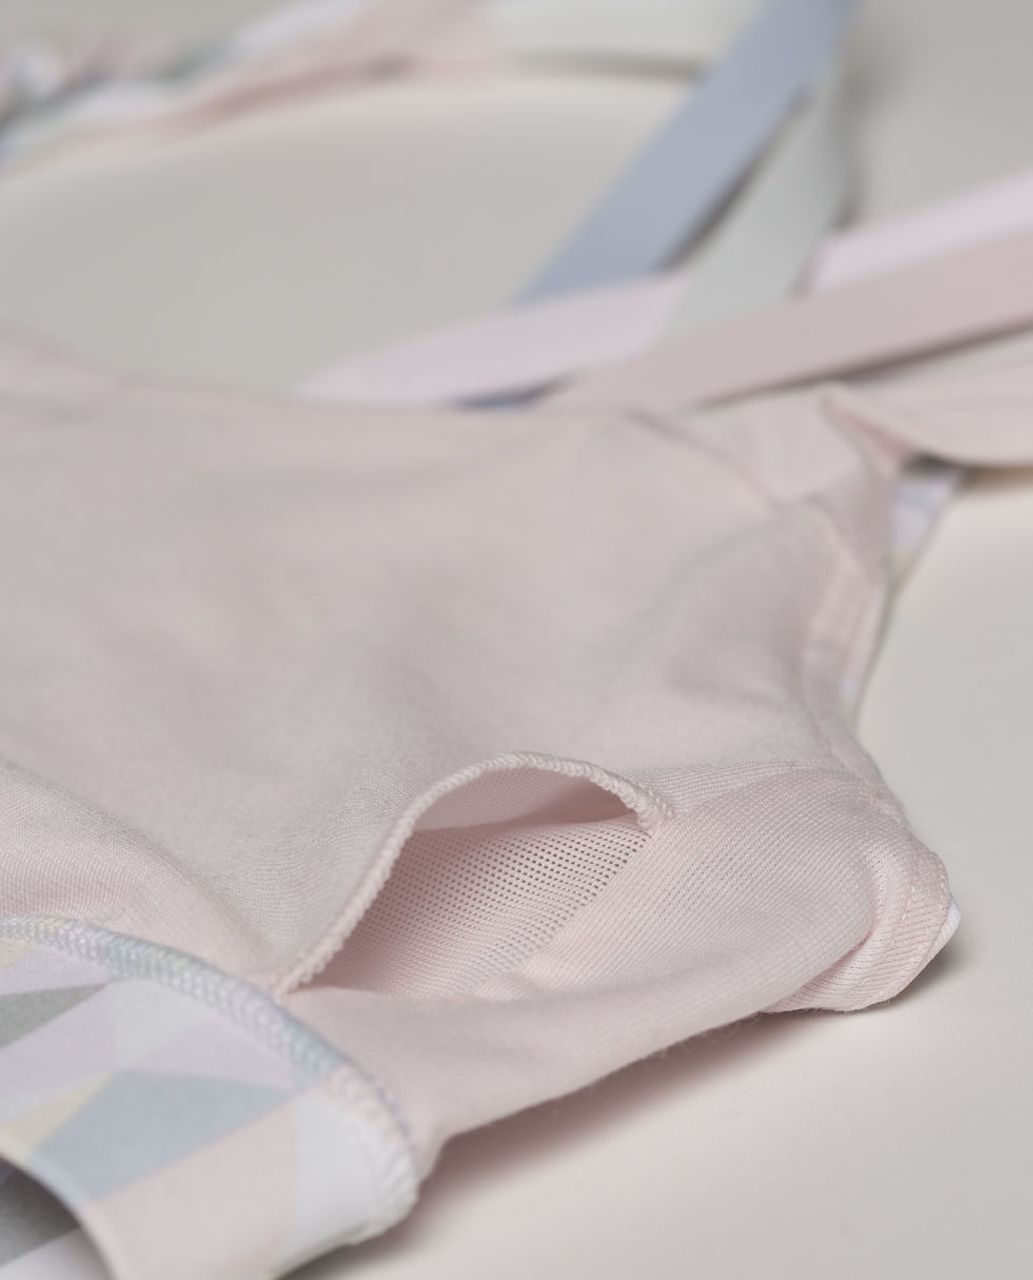 Lululemon Energy Bra - Stained Glass Love White Neutral Blush / Early Blue / Whisper Pink